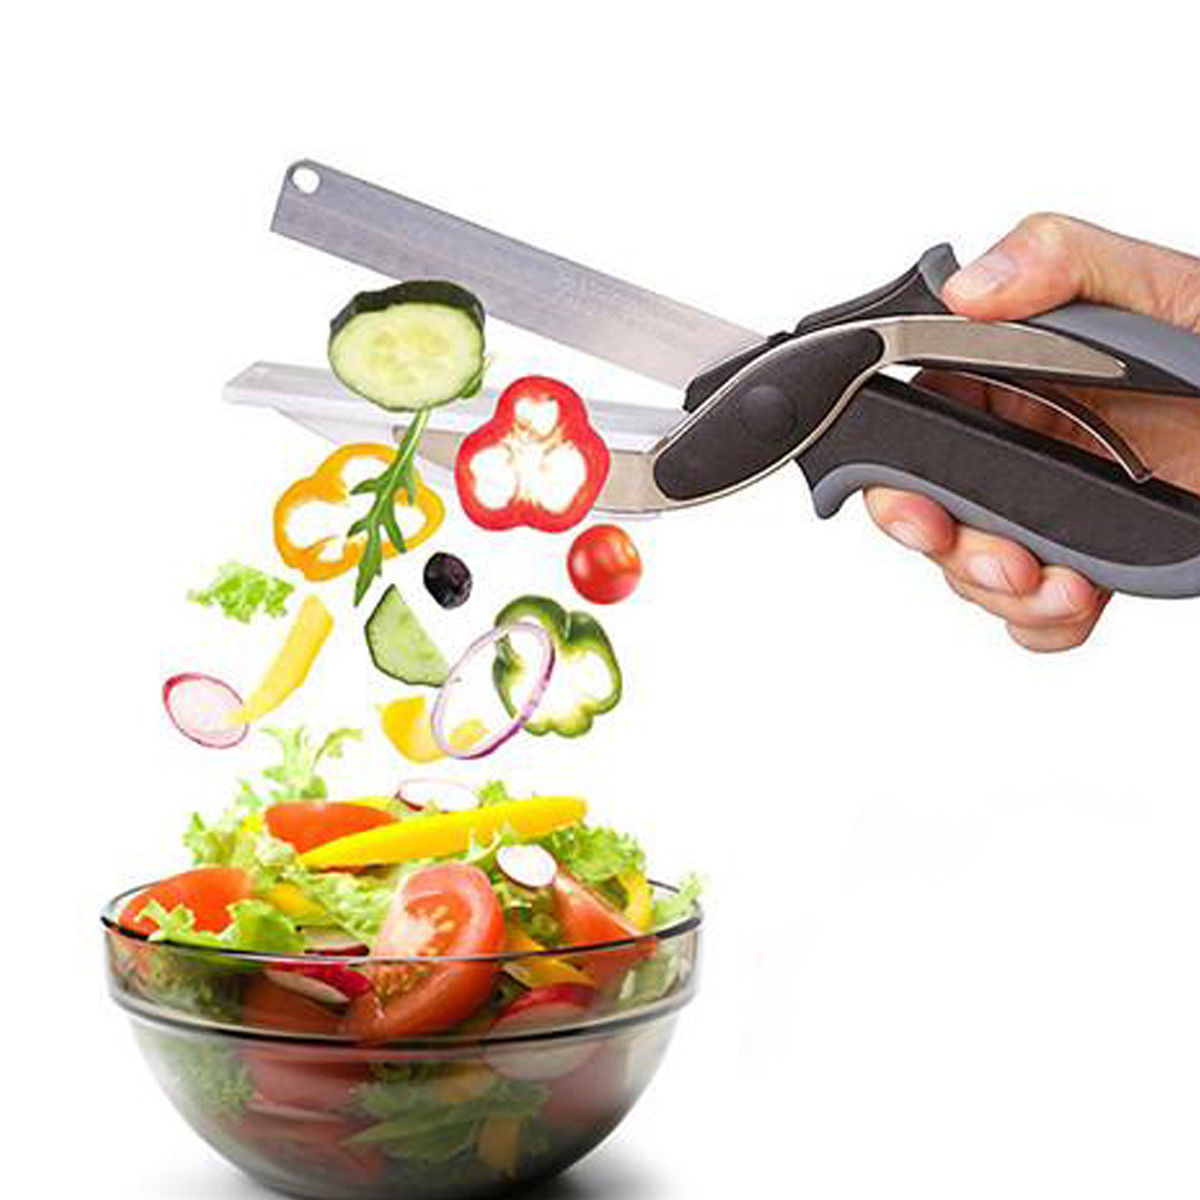 Clever Cutter 2 In 1 Food Chopper Kitchen Scissors Smart Kitchen Shears Vegetable Slicer Dicer with Cutting Board - Hillmarten